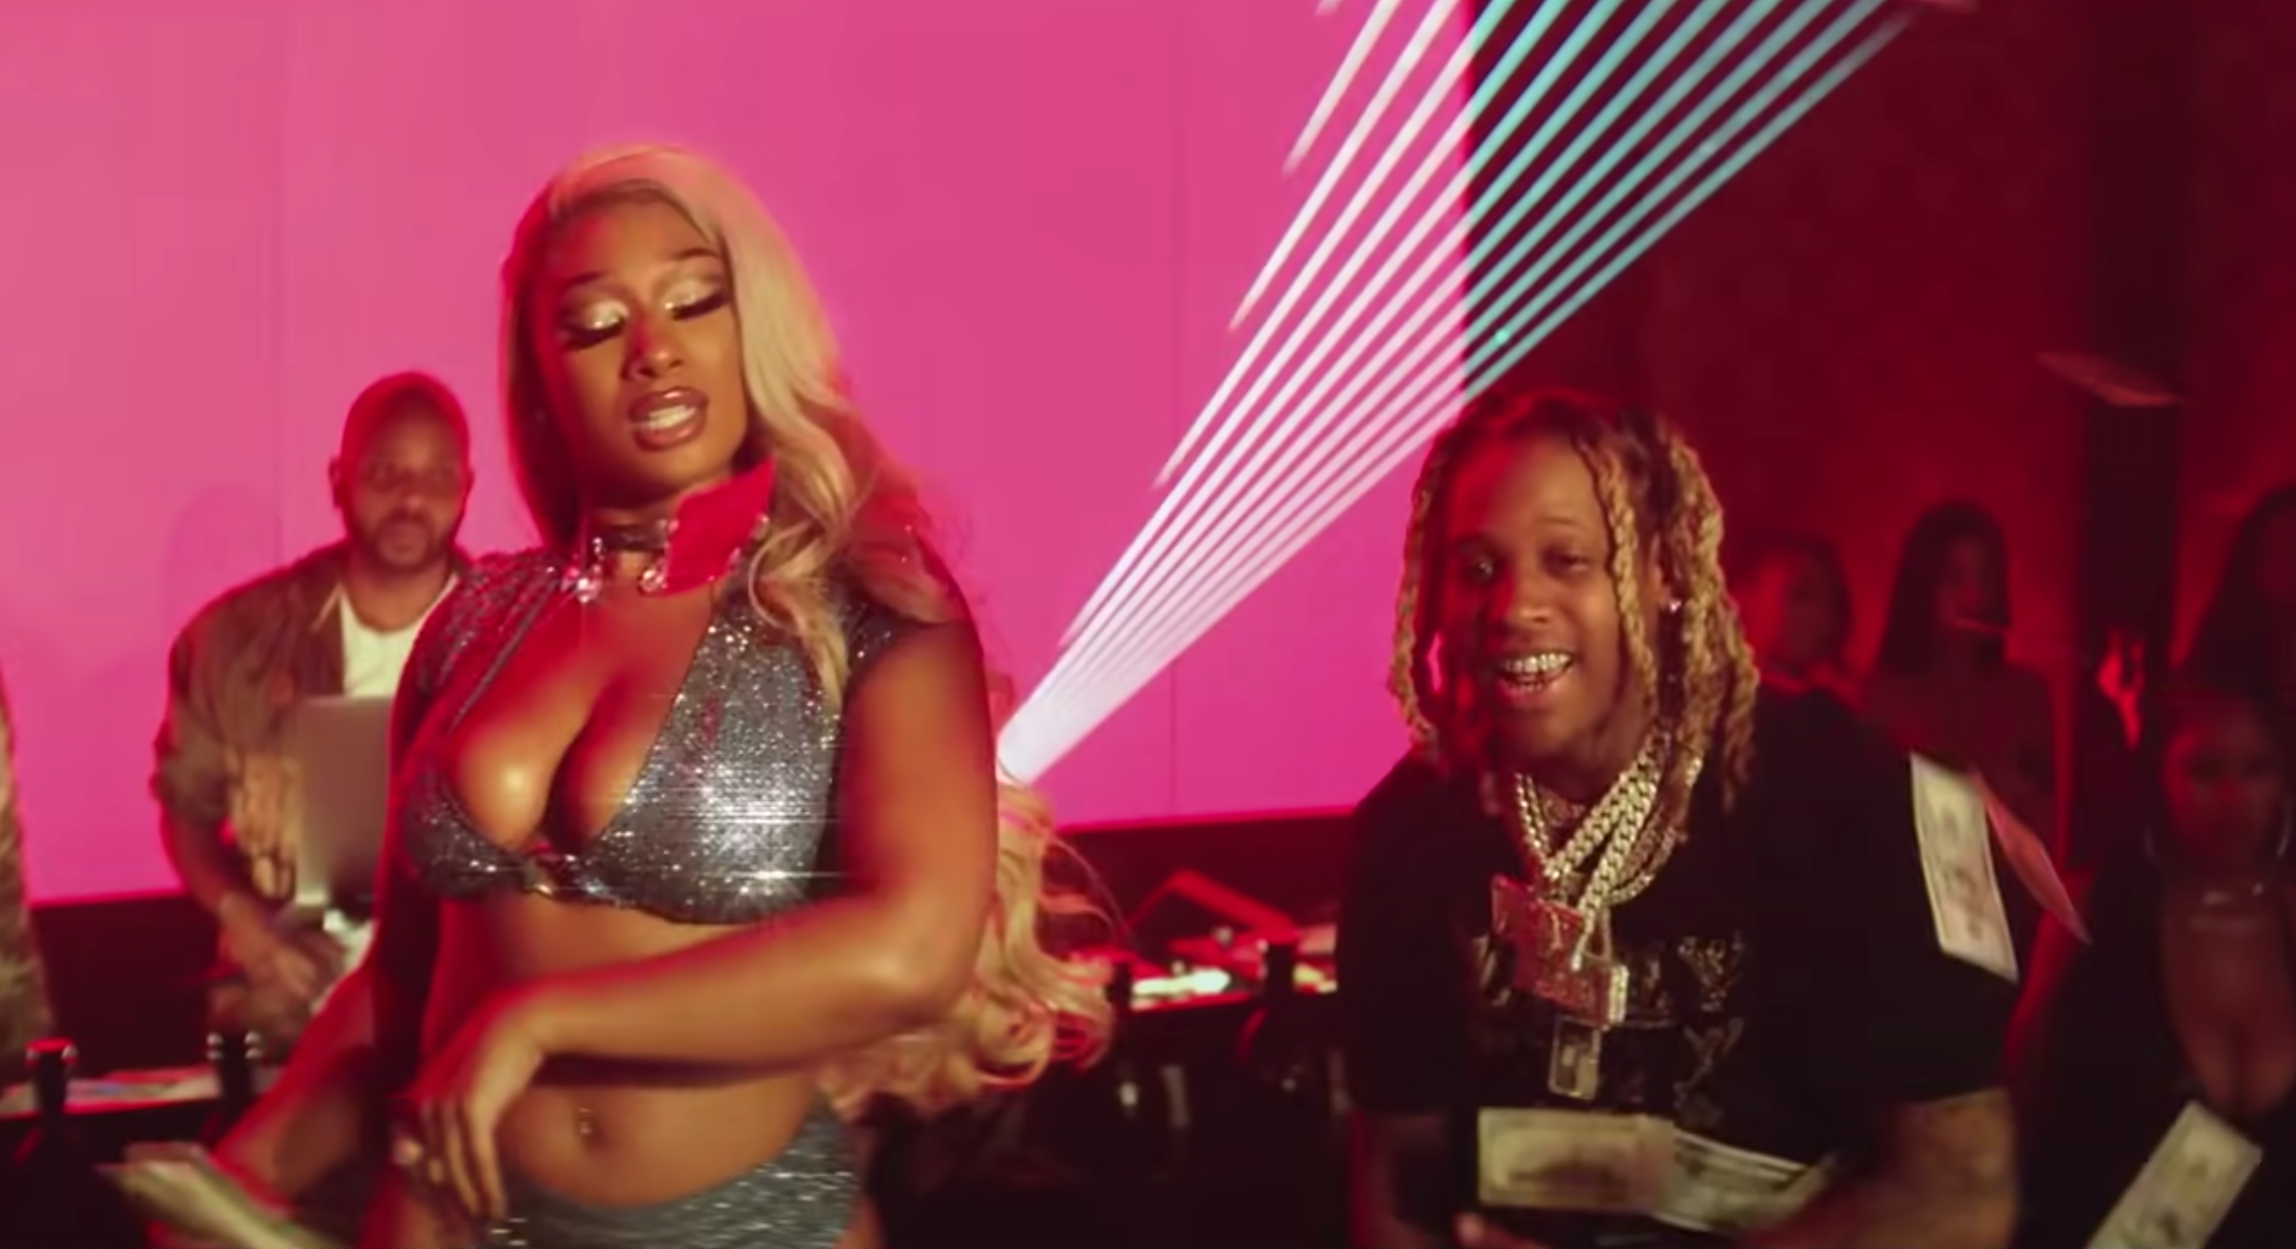 Megan Thee Stallion and Lil Durk